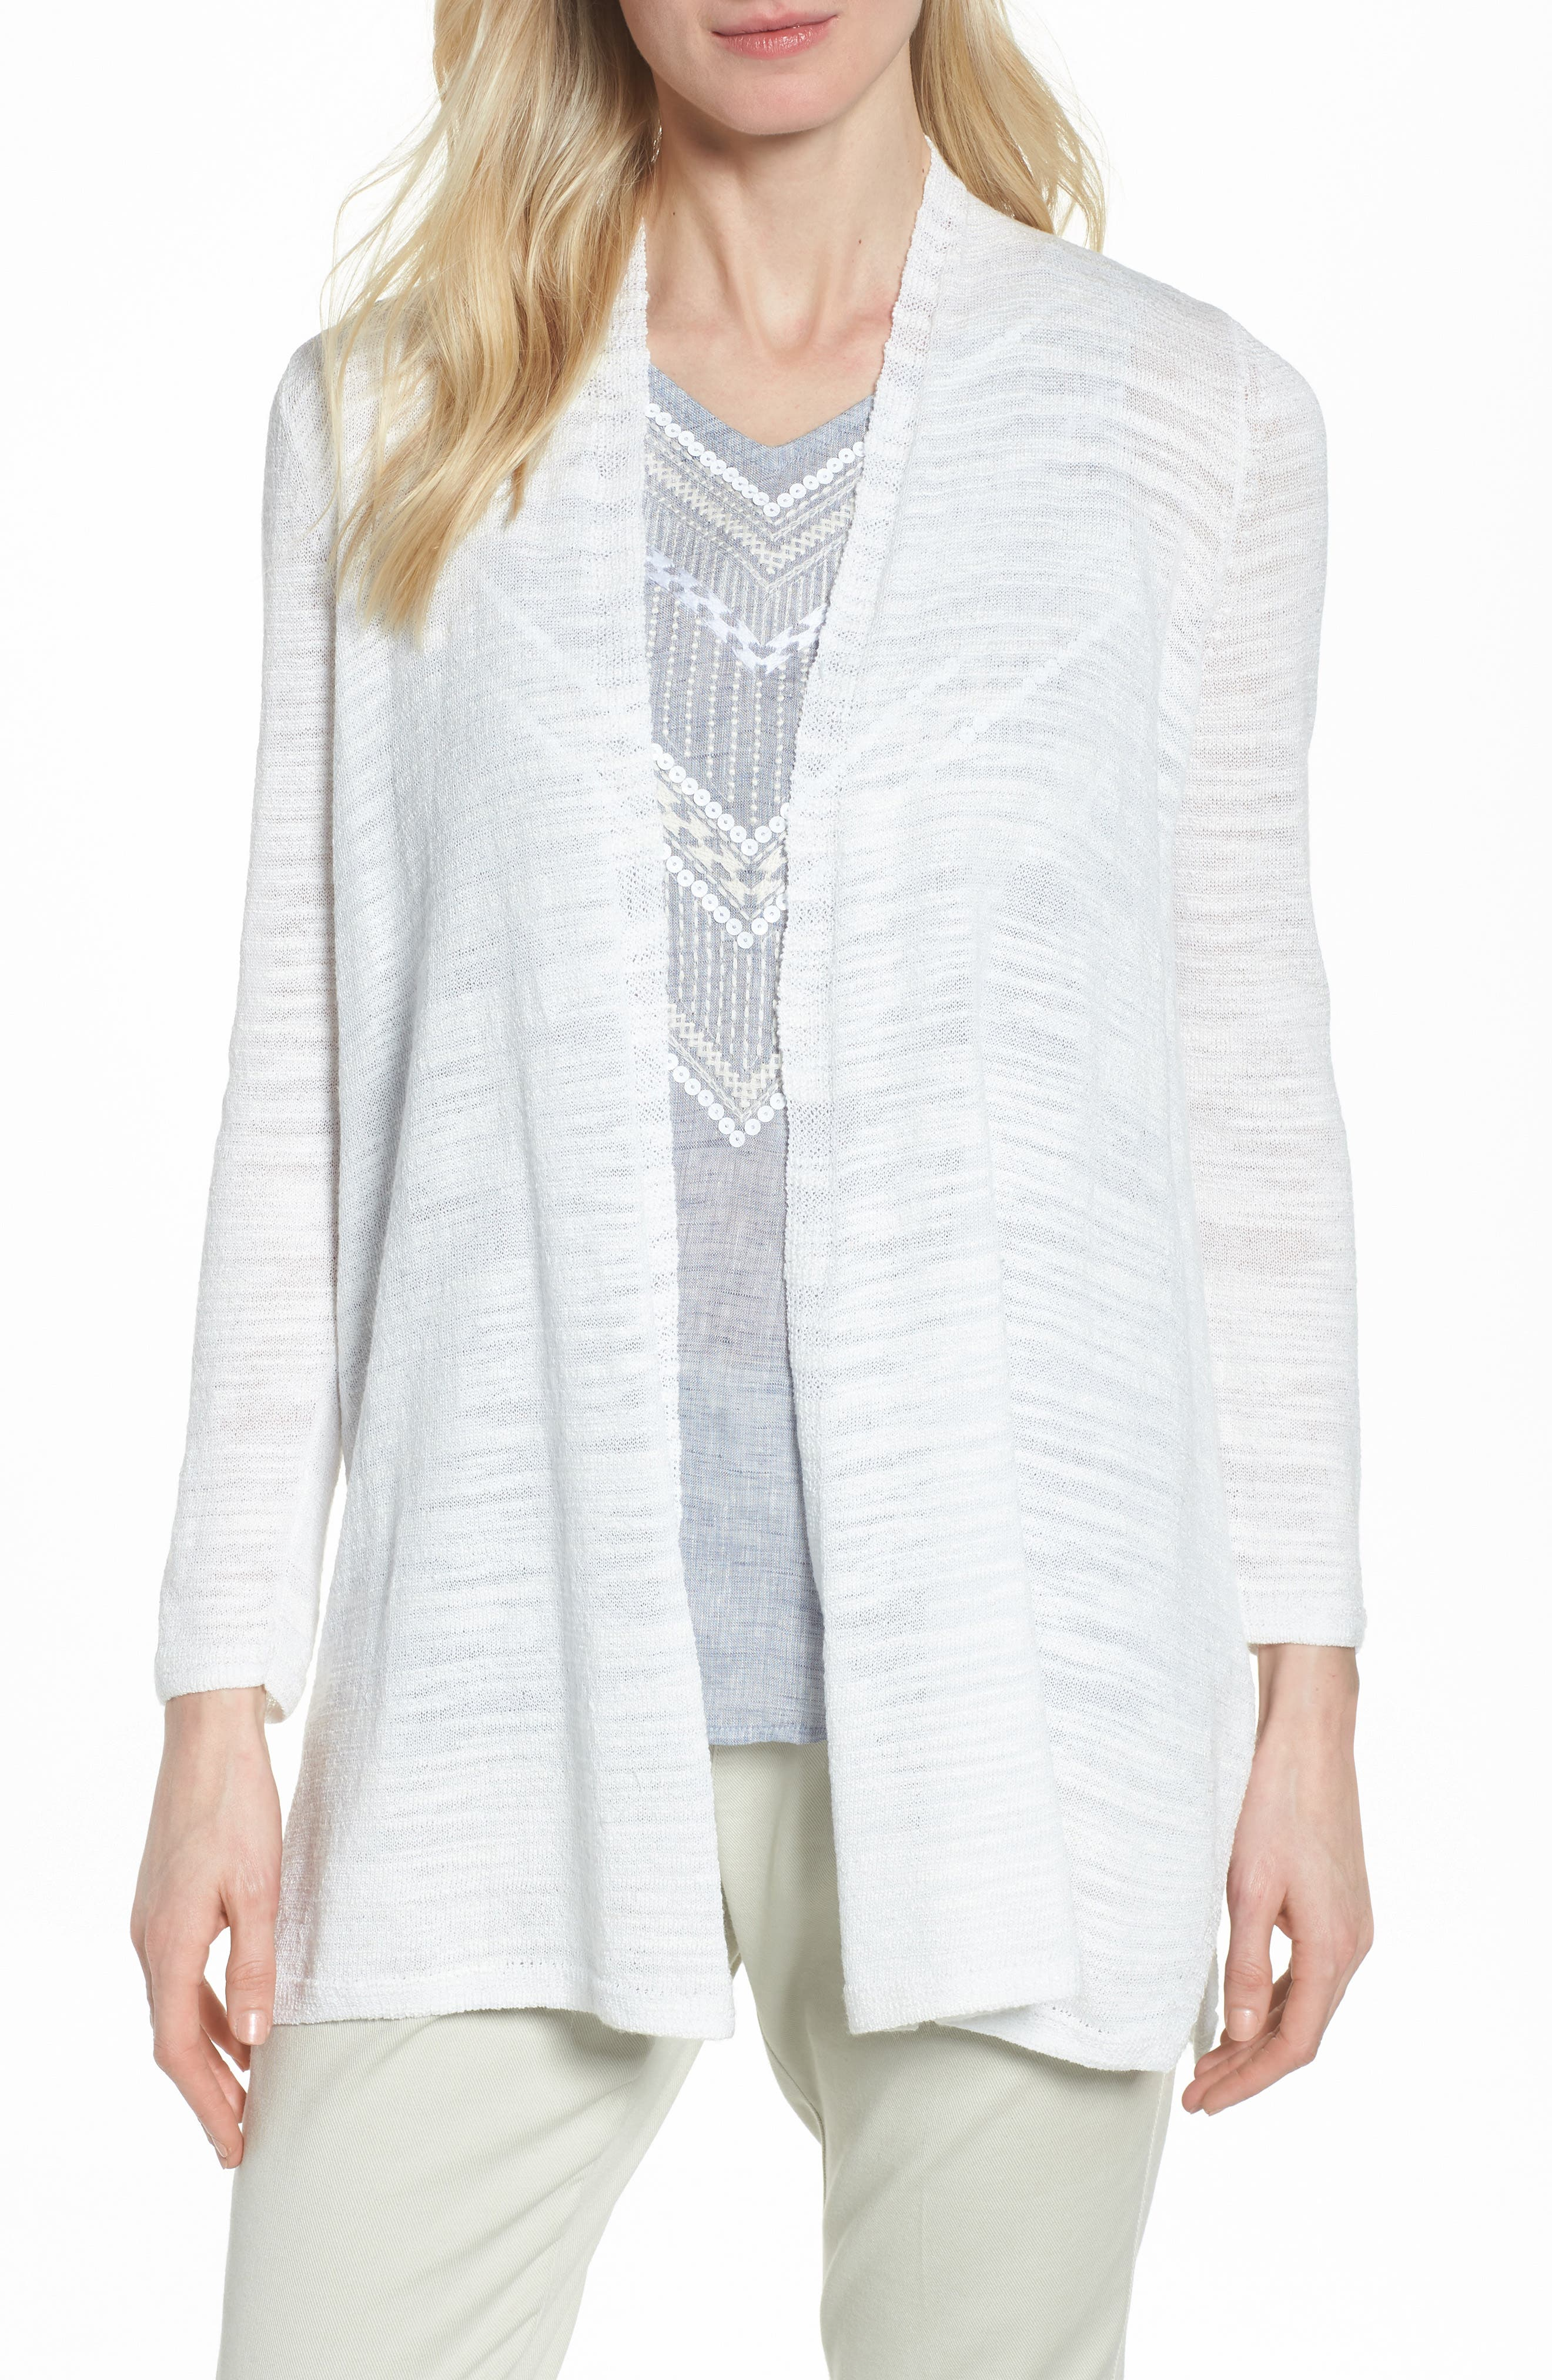 Cliff Dive Cardigan,                         Main,                         color, 123